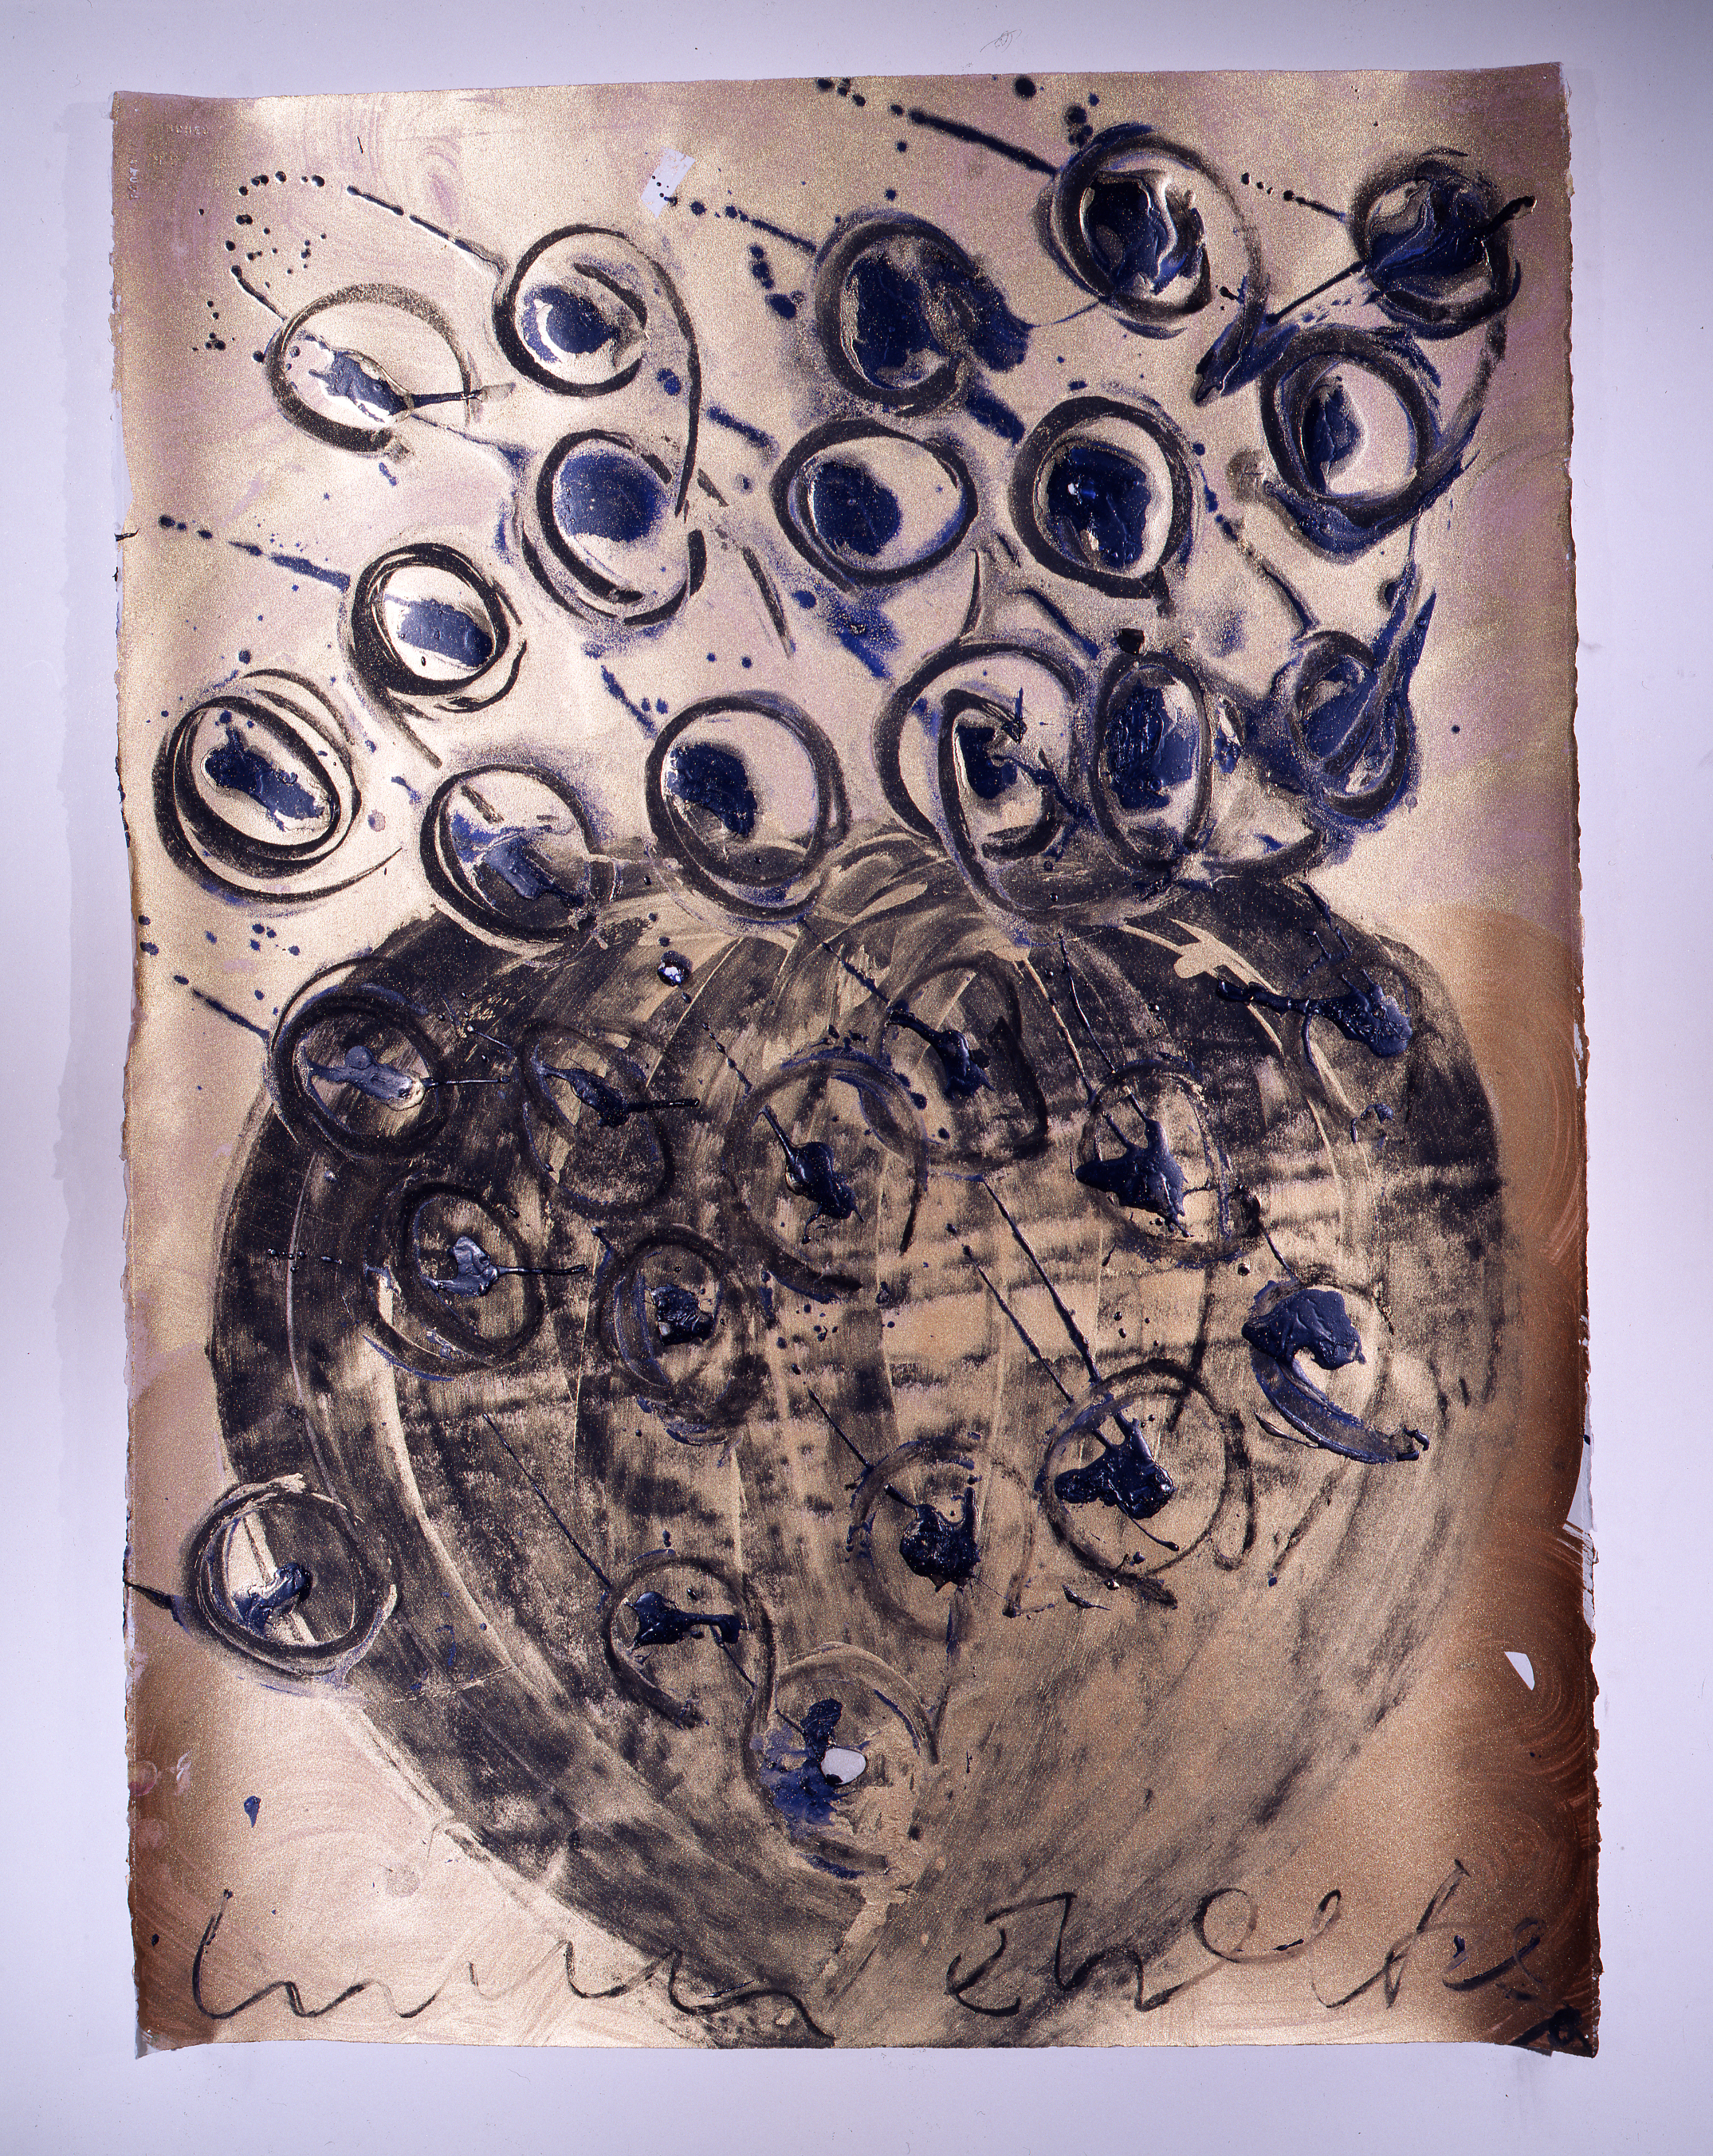 Dale Chihuly,  Ebeltoft Drawing,  (1991, mixed media on paper, 30 x 22 inches), DC.359